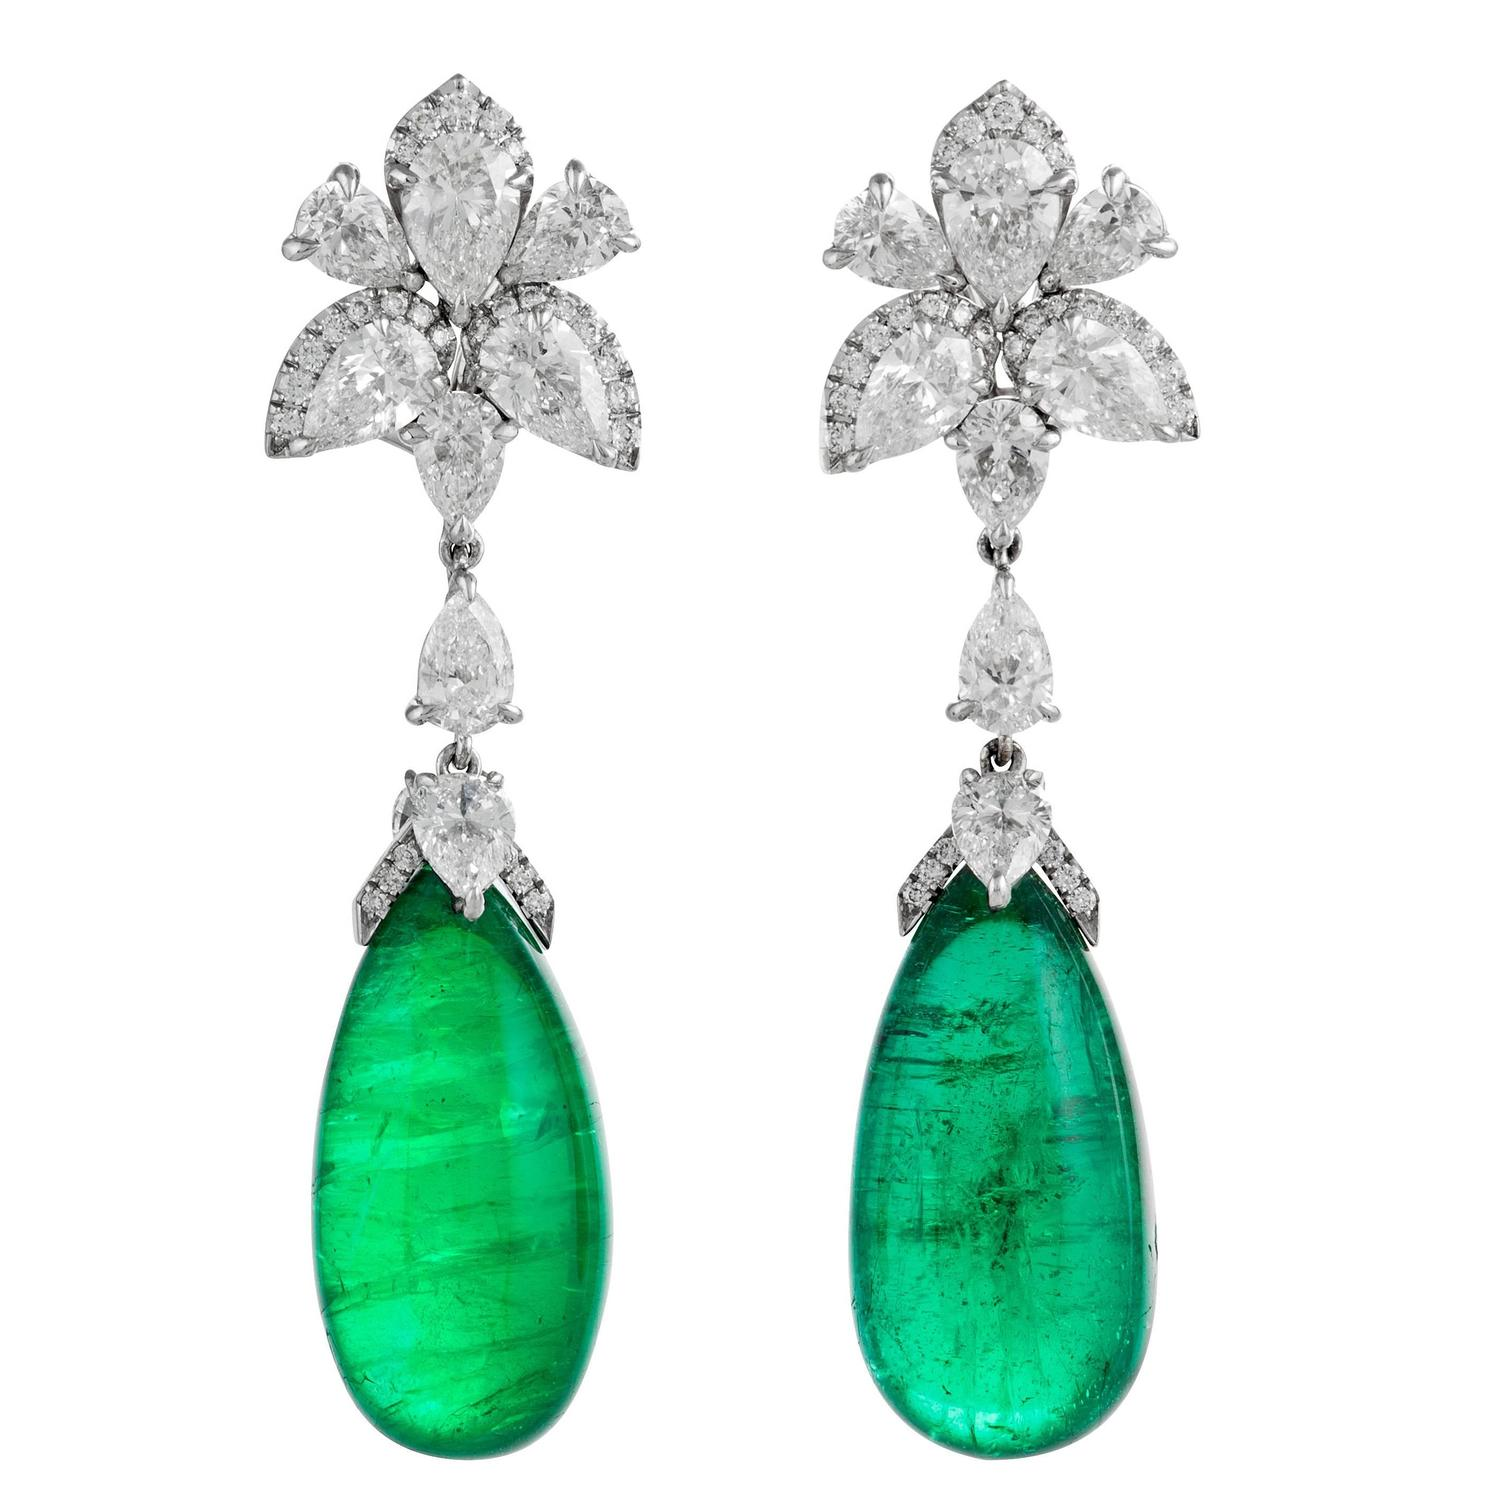 25 21 Carats Oval Cabochon Emeralds Diamonds Gold Earrings For Sale at 1stdibs